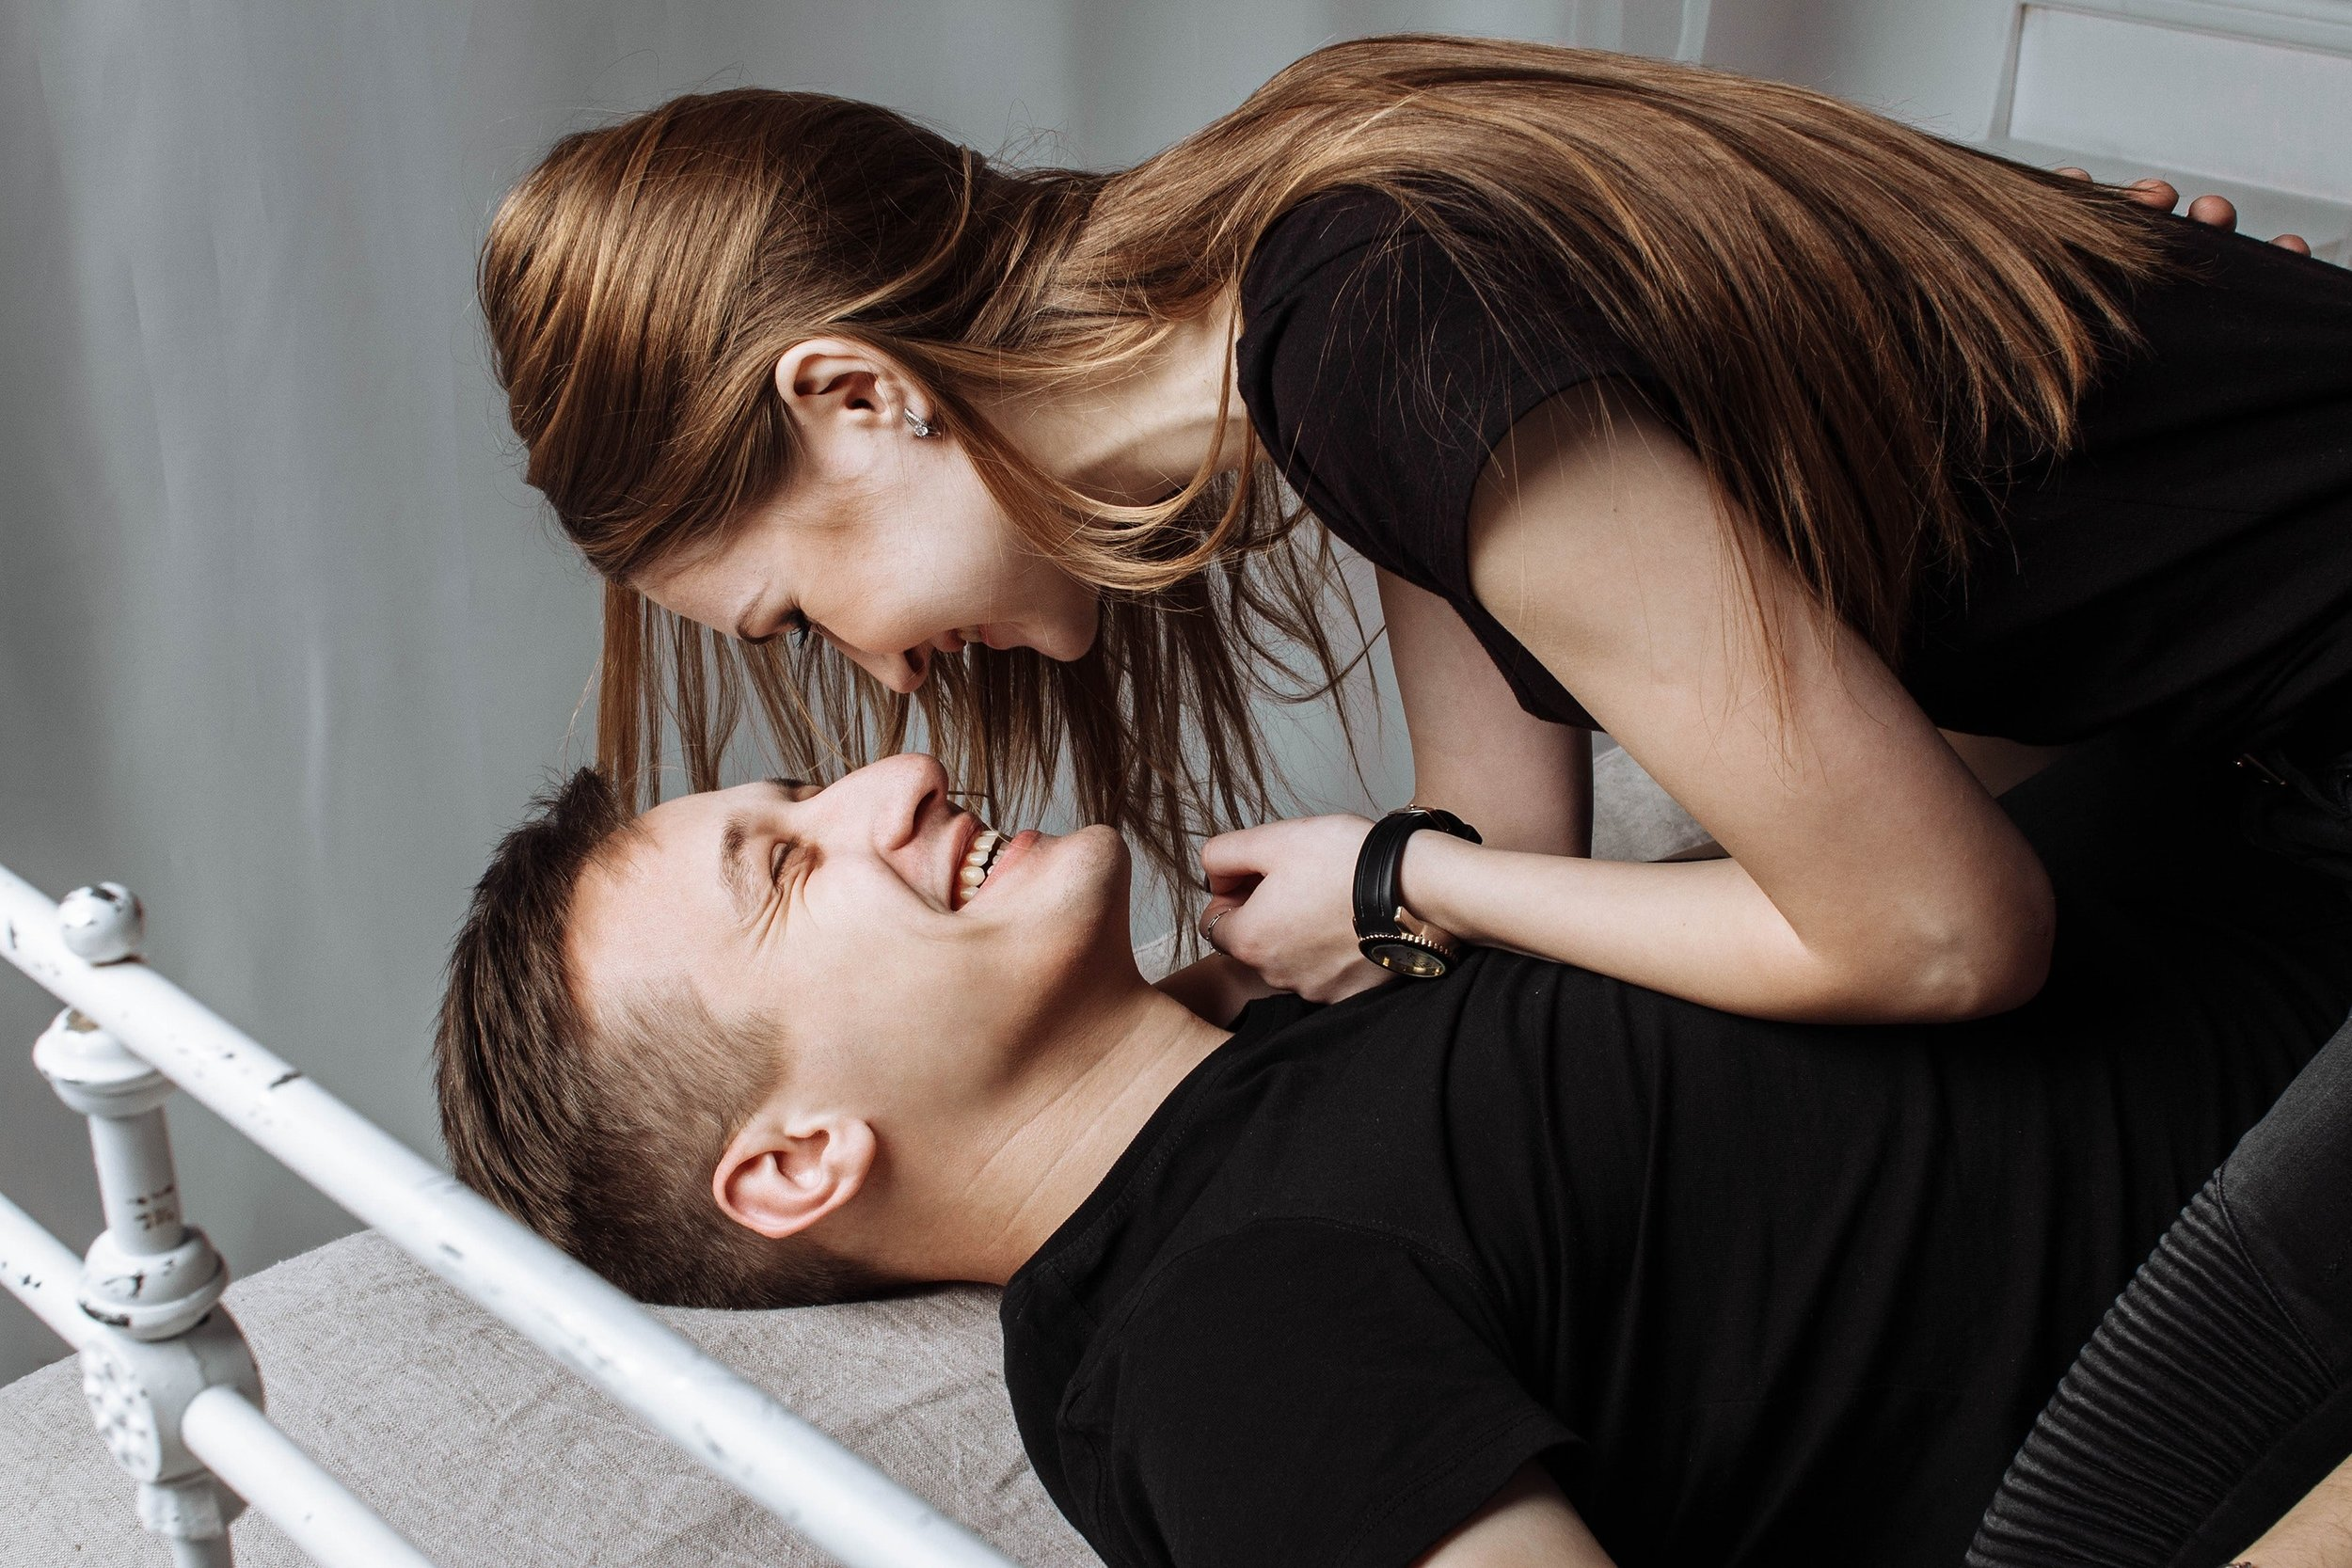 How To Make Your Love For Each Other Last - Why physical bonding important in relationship